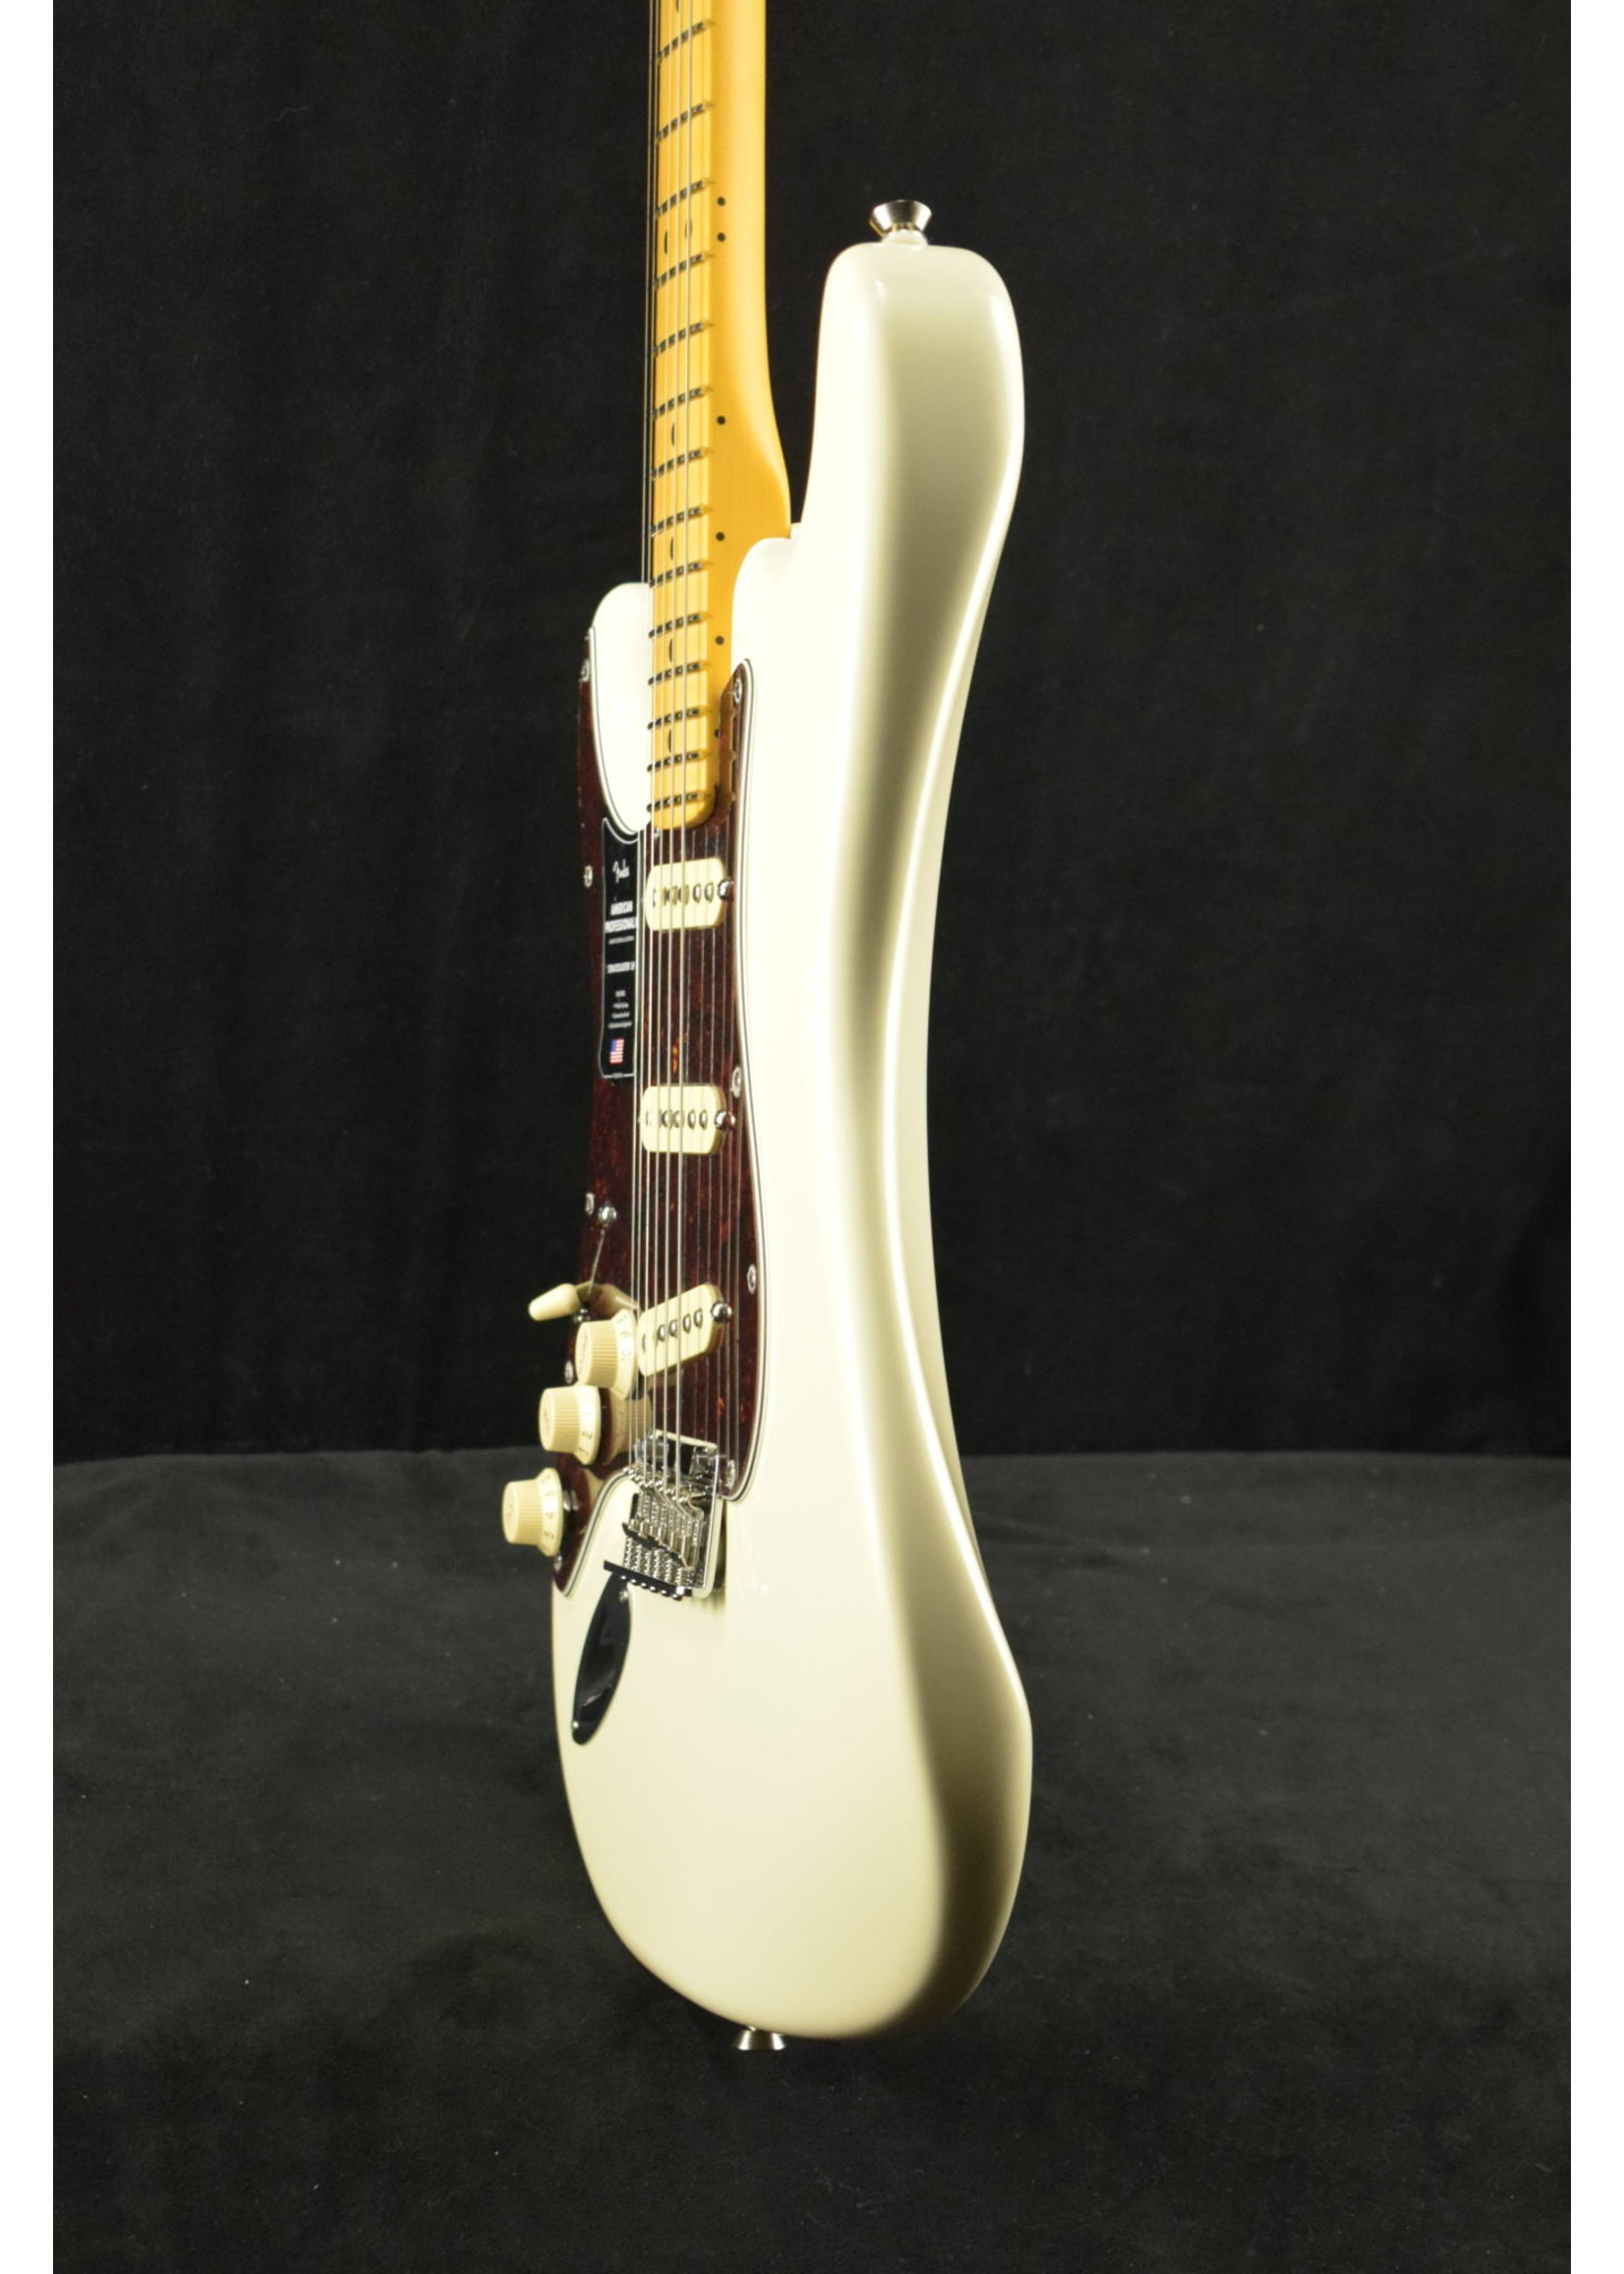 Fender American Professional II Stratocaster Left-Hand Maple Fingerboard Olympic White